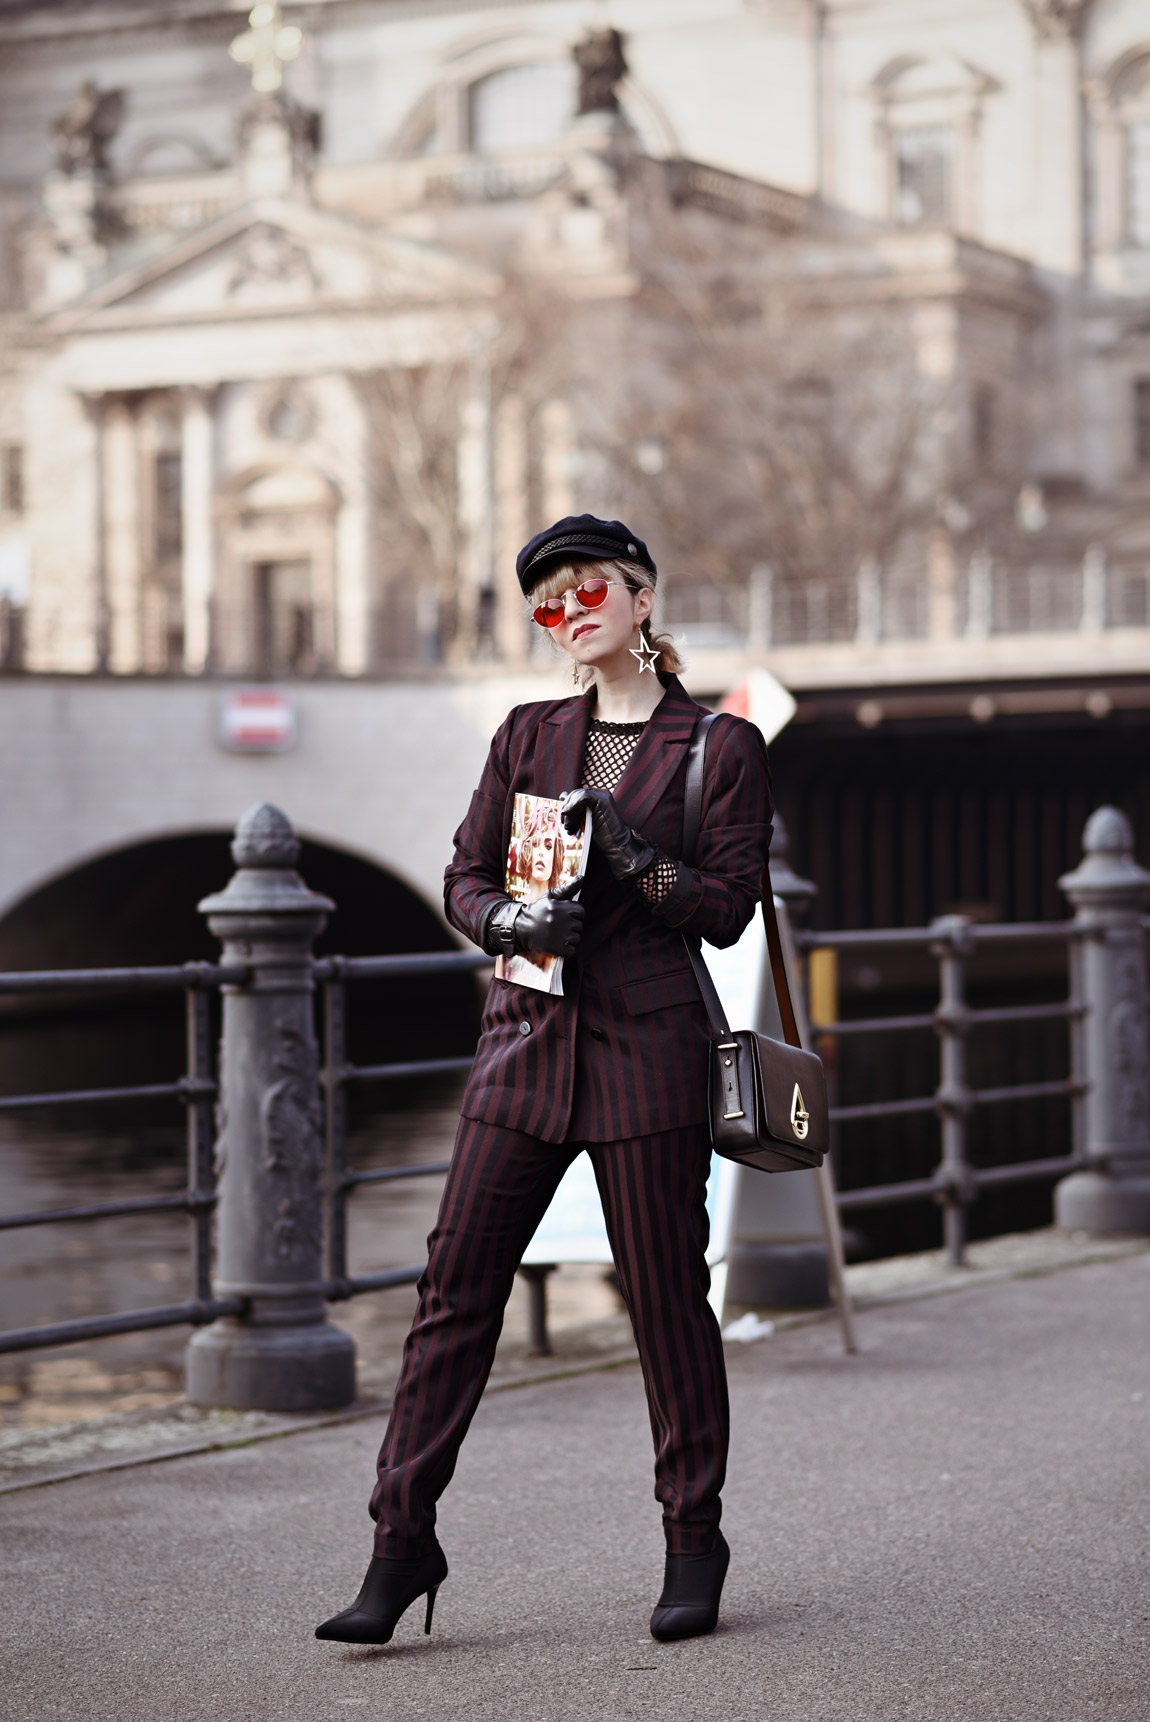 vogue, stripes, suit, streifen, anzug, kenzo, bag, heels, sock, boots, outfit, fashionblogger, modeblog, berlin, streetstyle, vero, moda, look, ootd